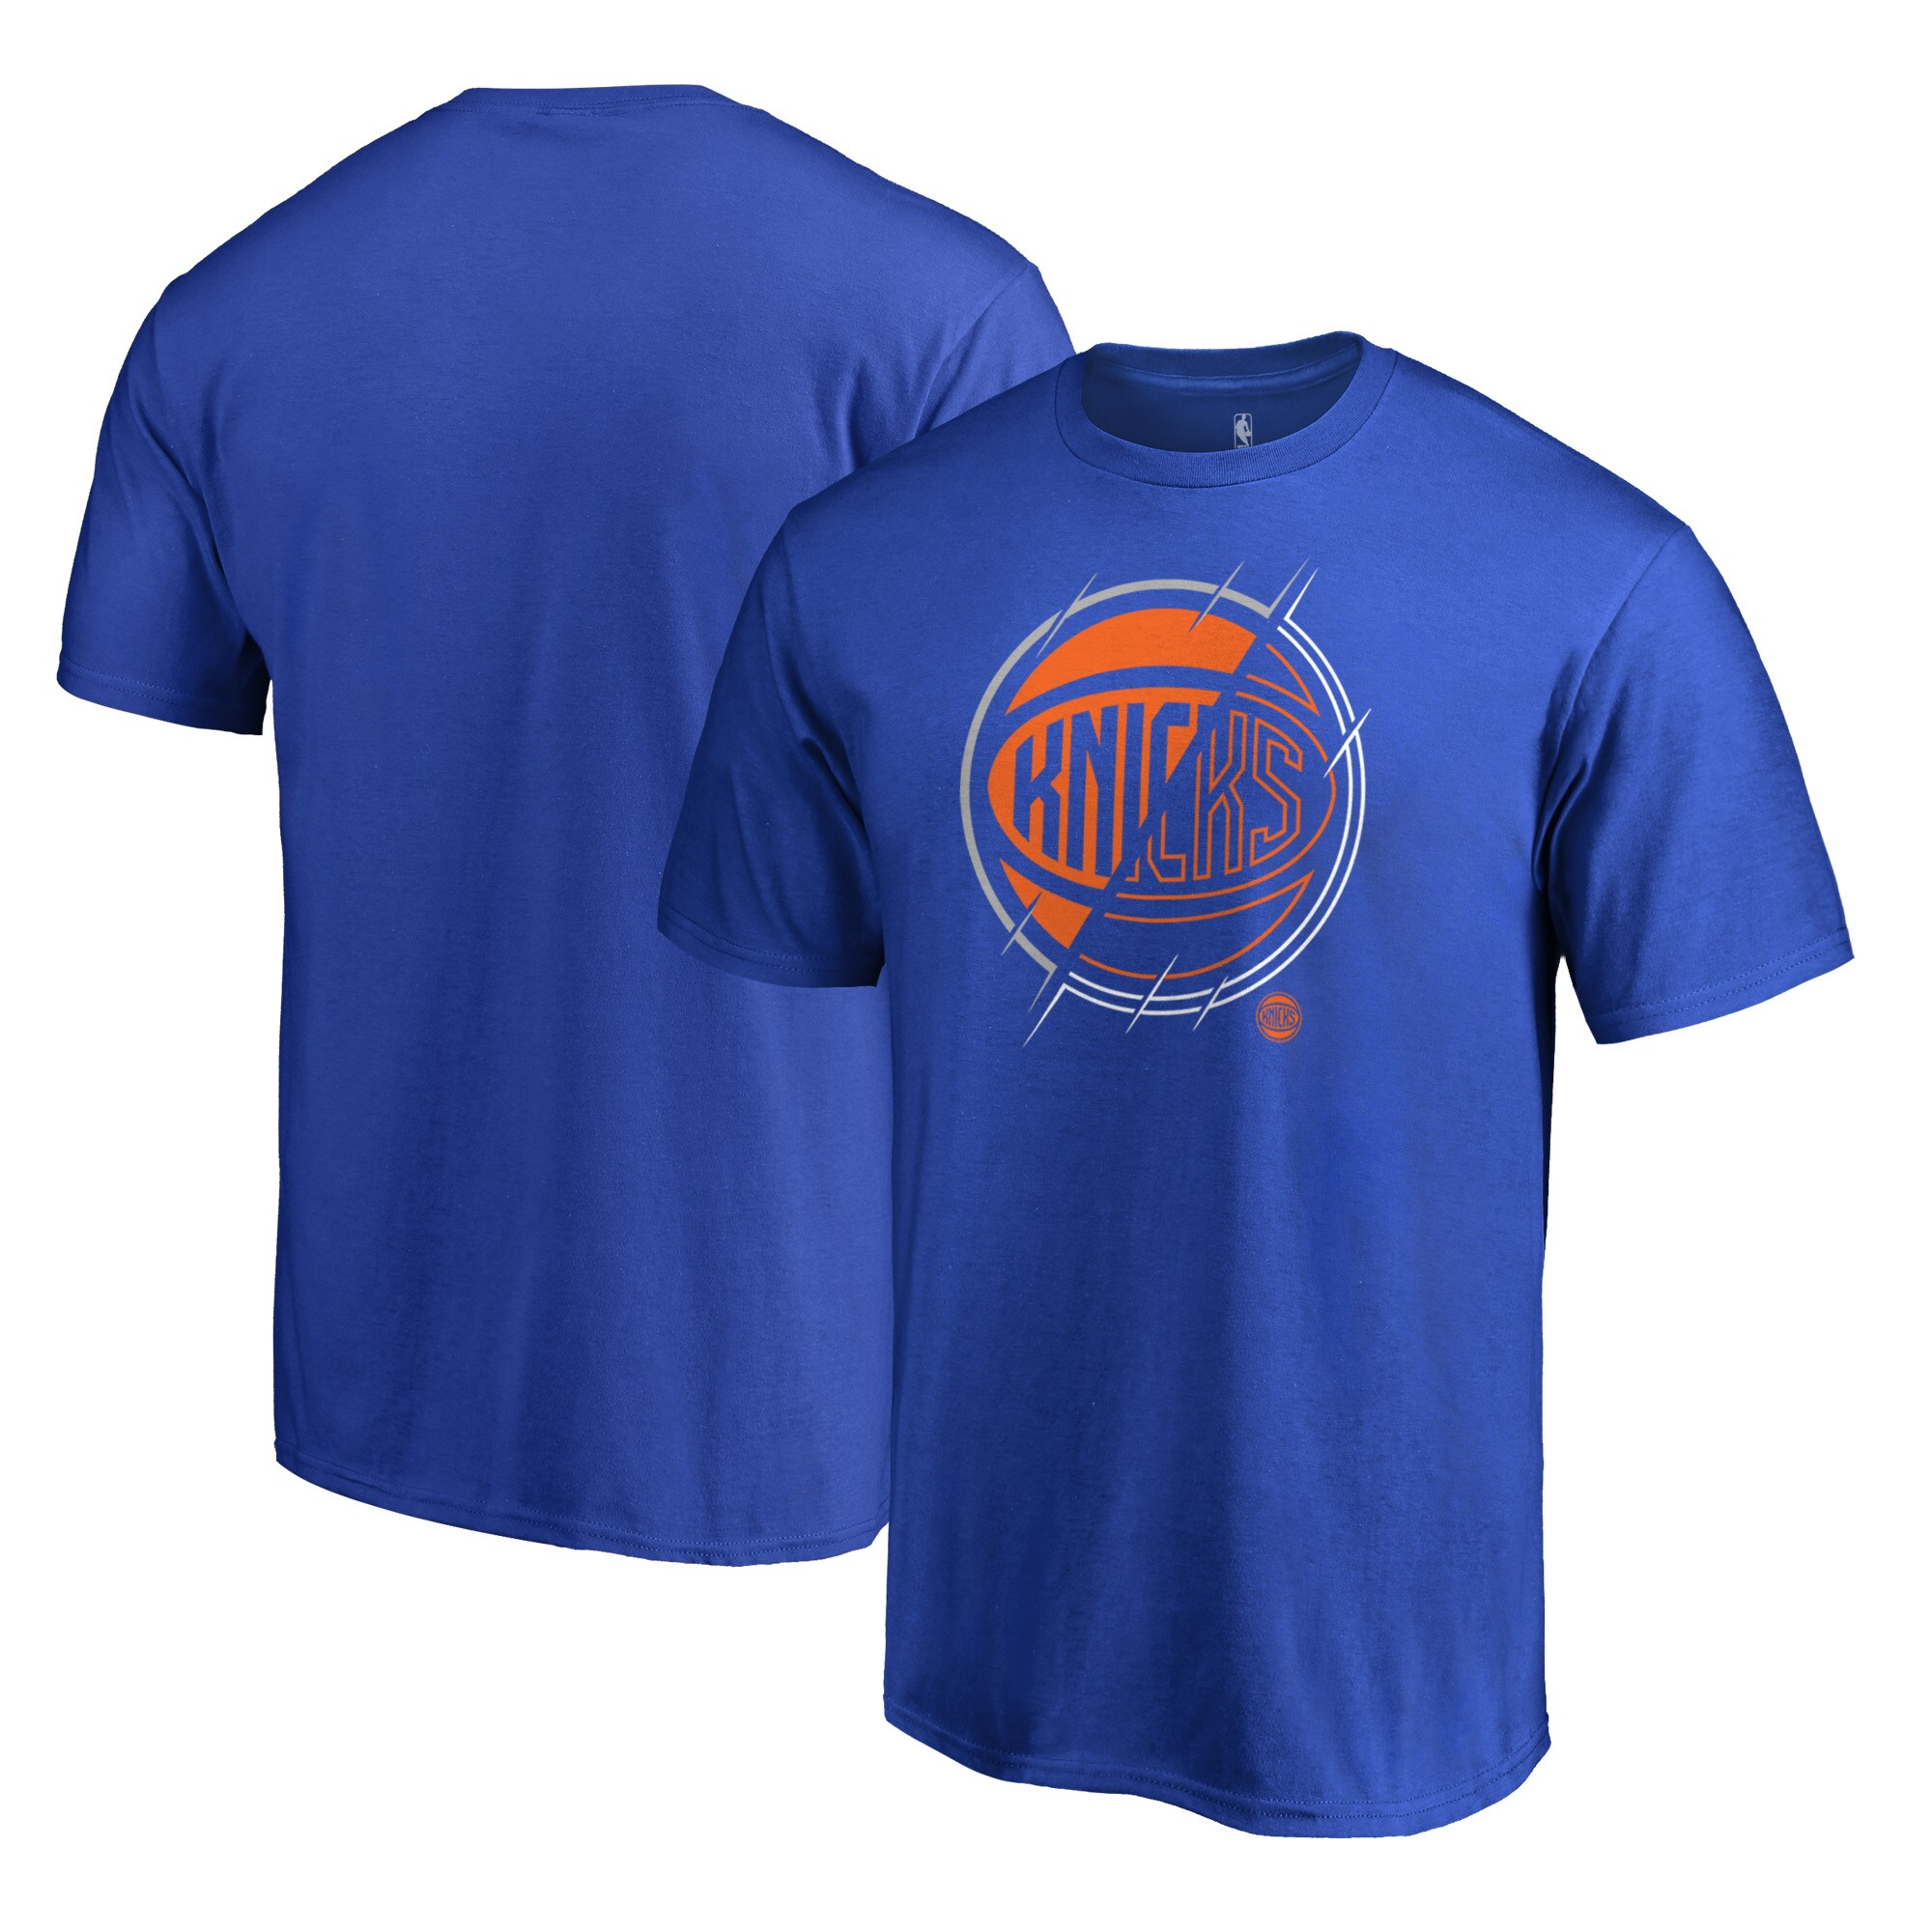 New York Knicks Fanatics Branded X-Ray Big and Tall T-Shirt - Blue